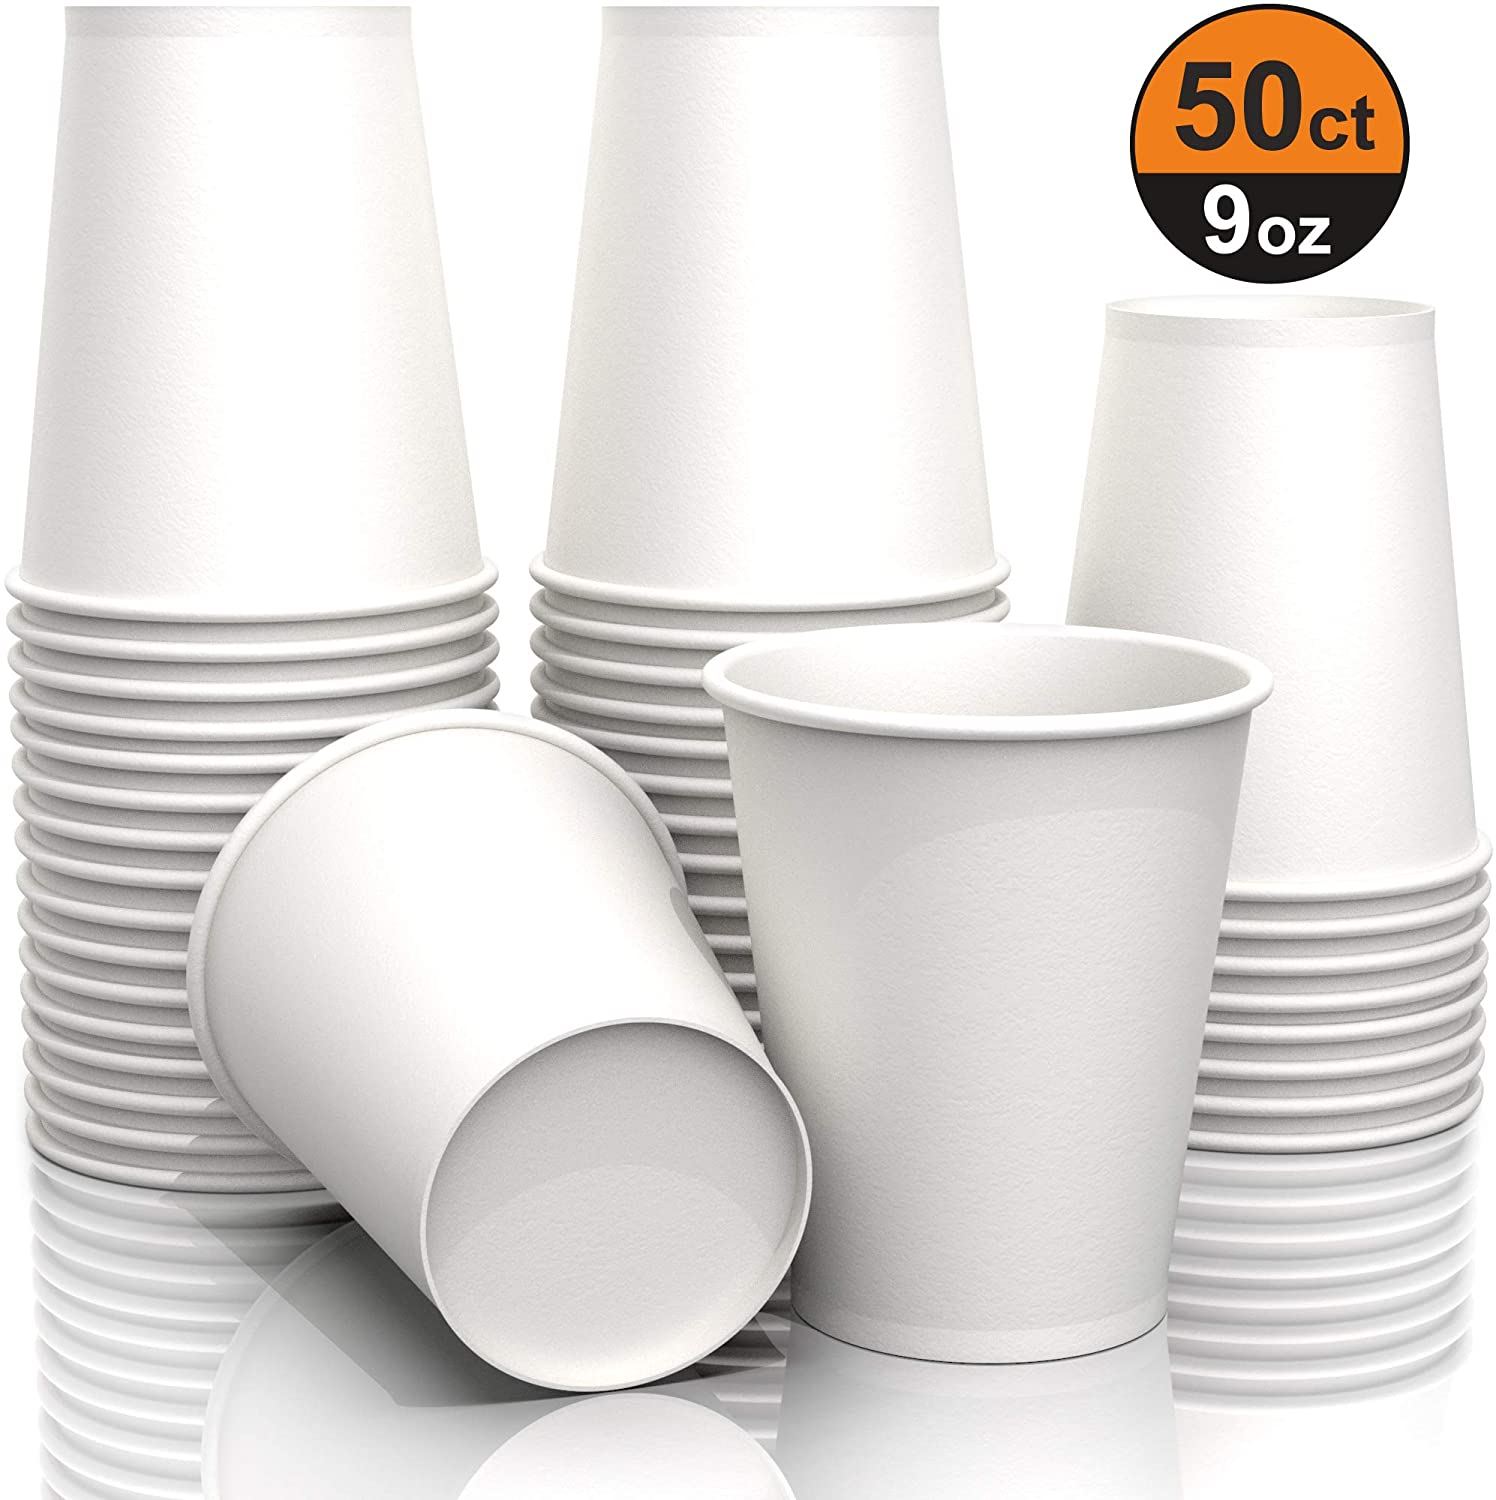 9 oz Paper Cups - Disposable Paper Cups